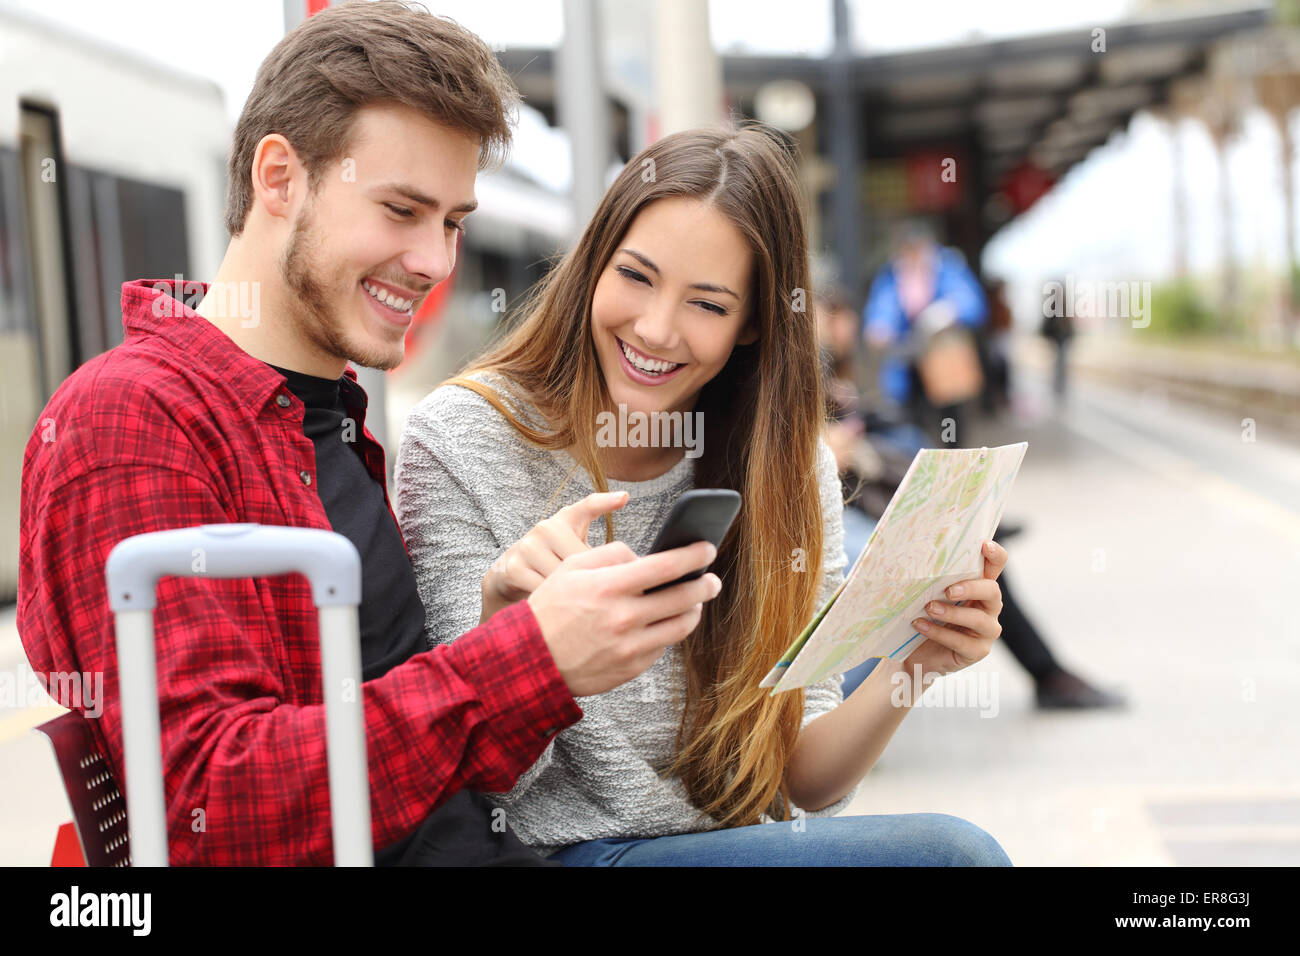 Tourists travelers consulting gps and guide from a smart phone in a train station - Stock Image